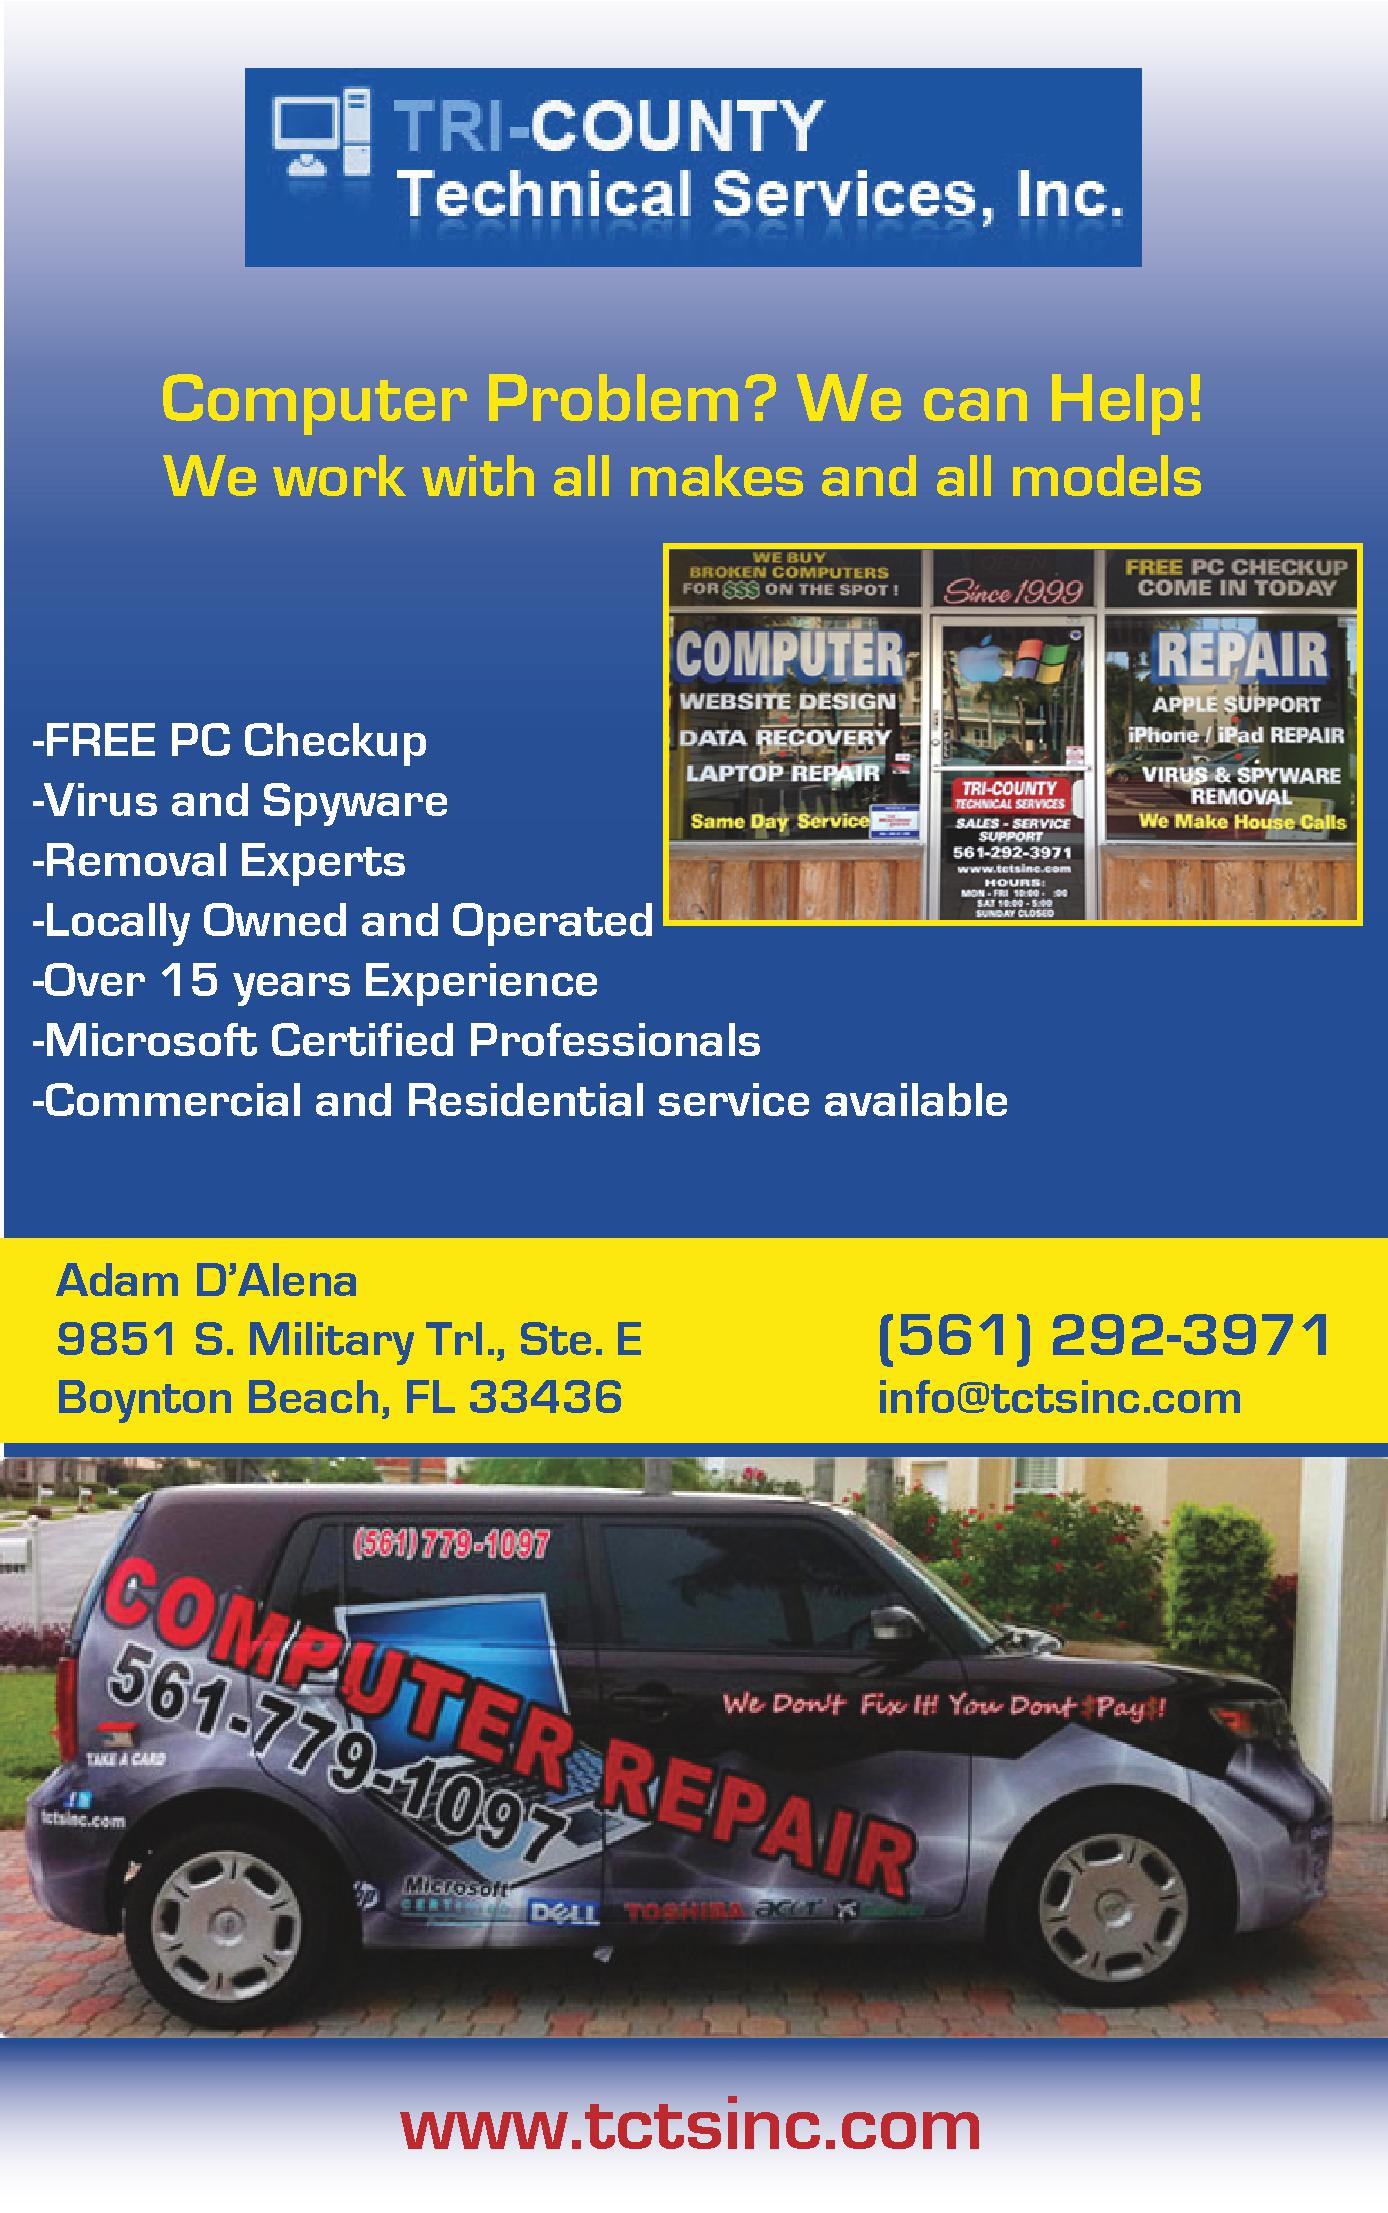 TRI-COUNTY Technical Services, Inc.